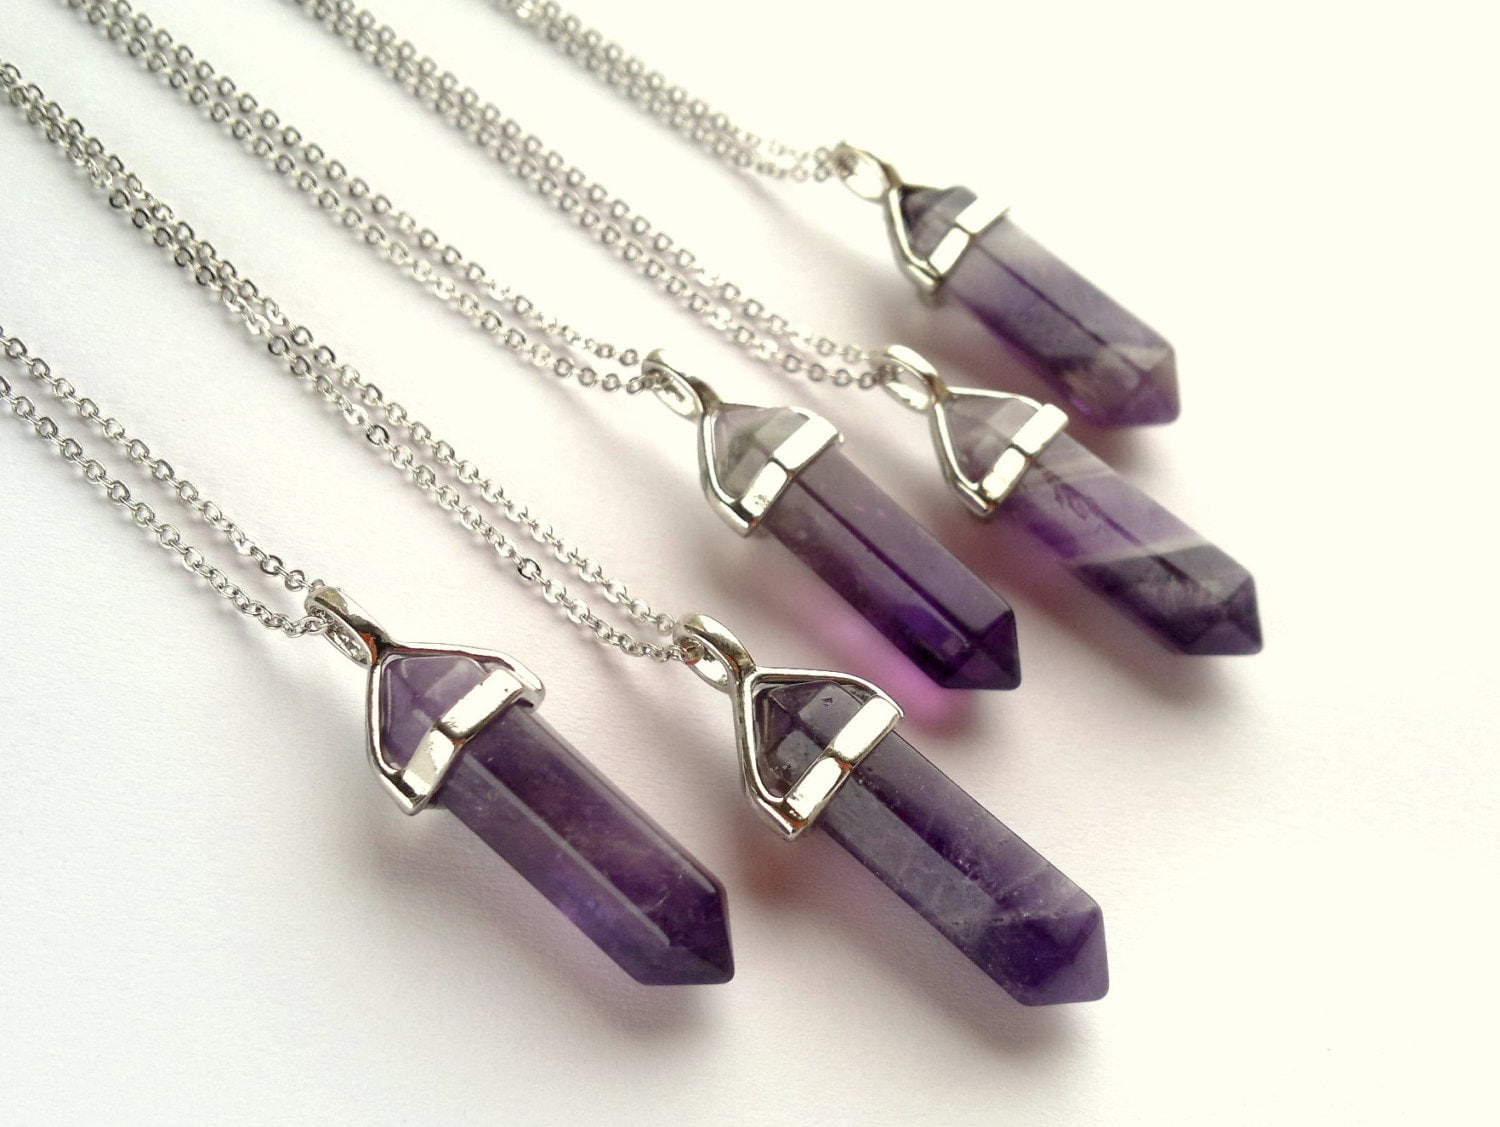 women wear jewellery accessories purple necklace stone flat